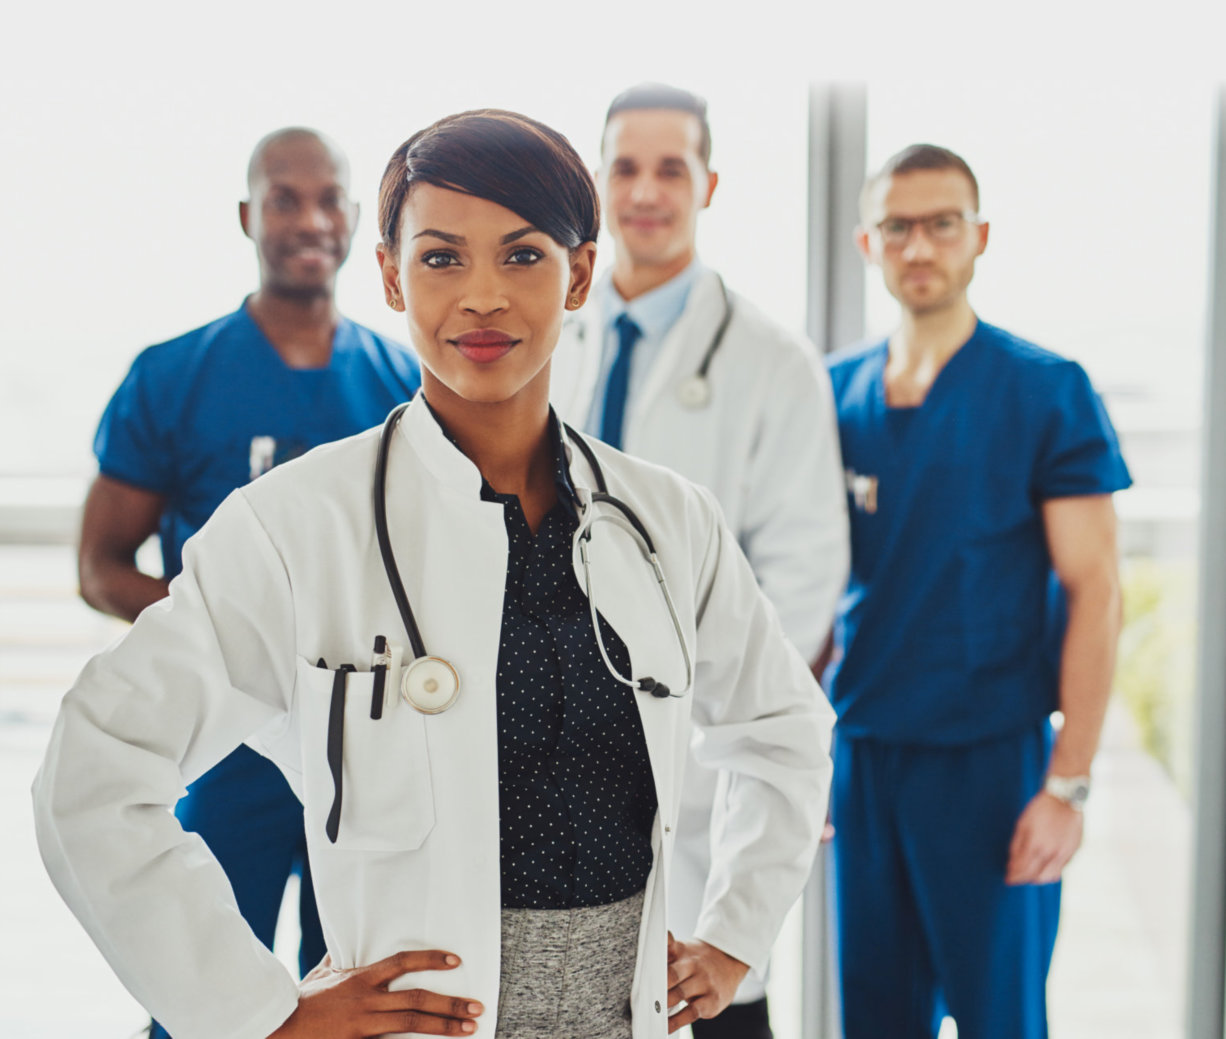 four medical practitioners smiling